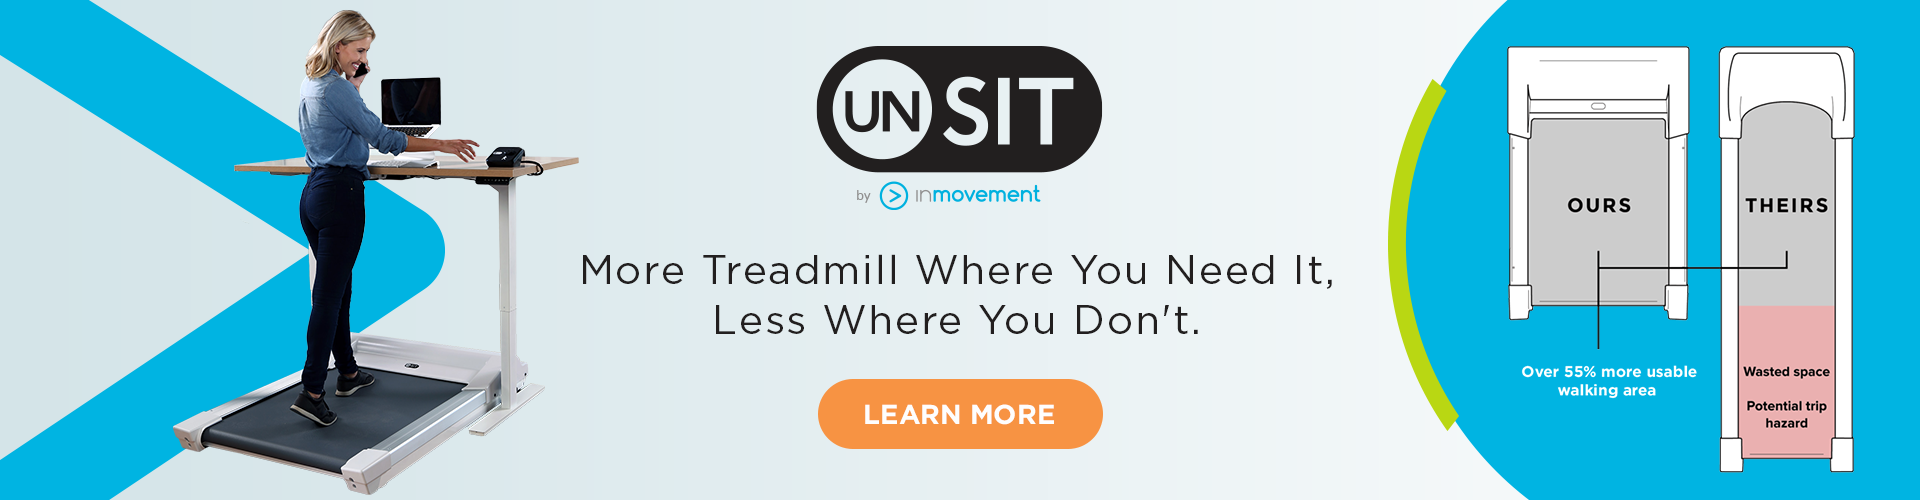 InMovement Home Page Banner featuring Unsit Treadmill Desk